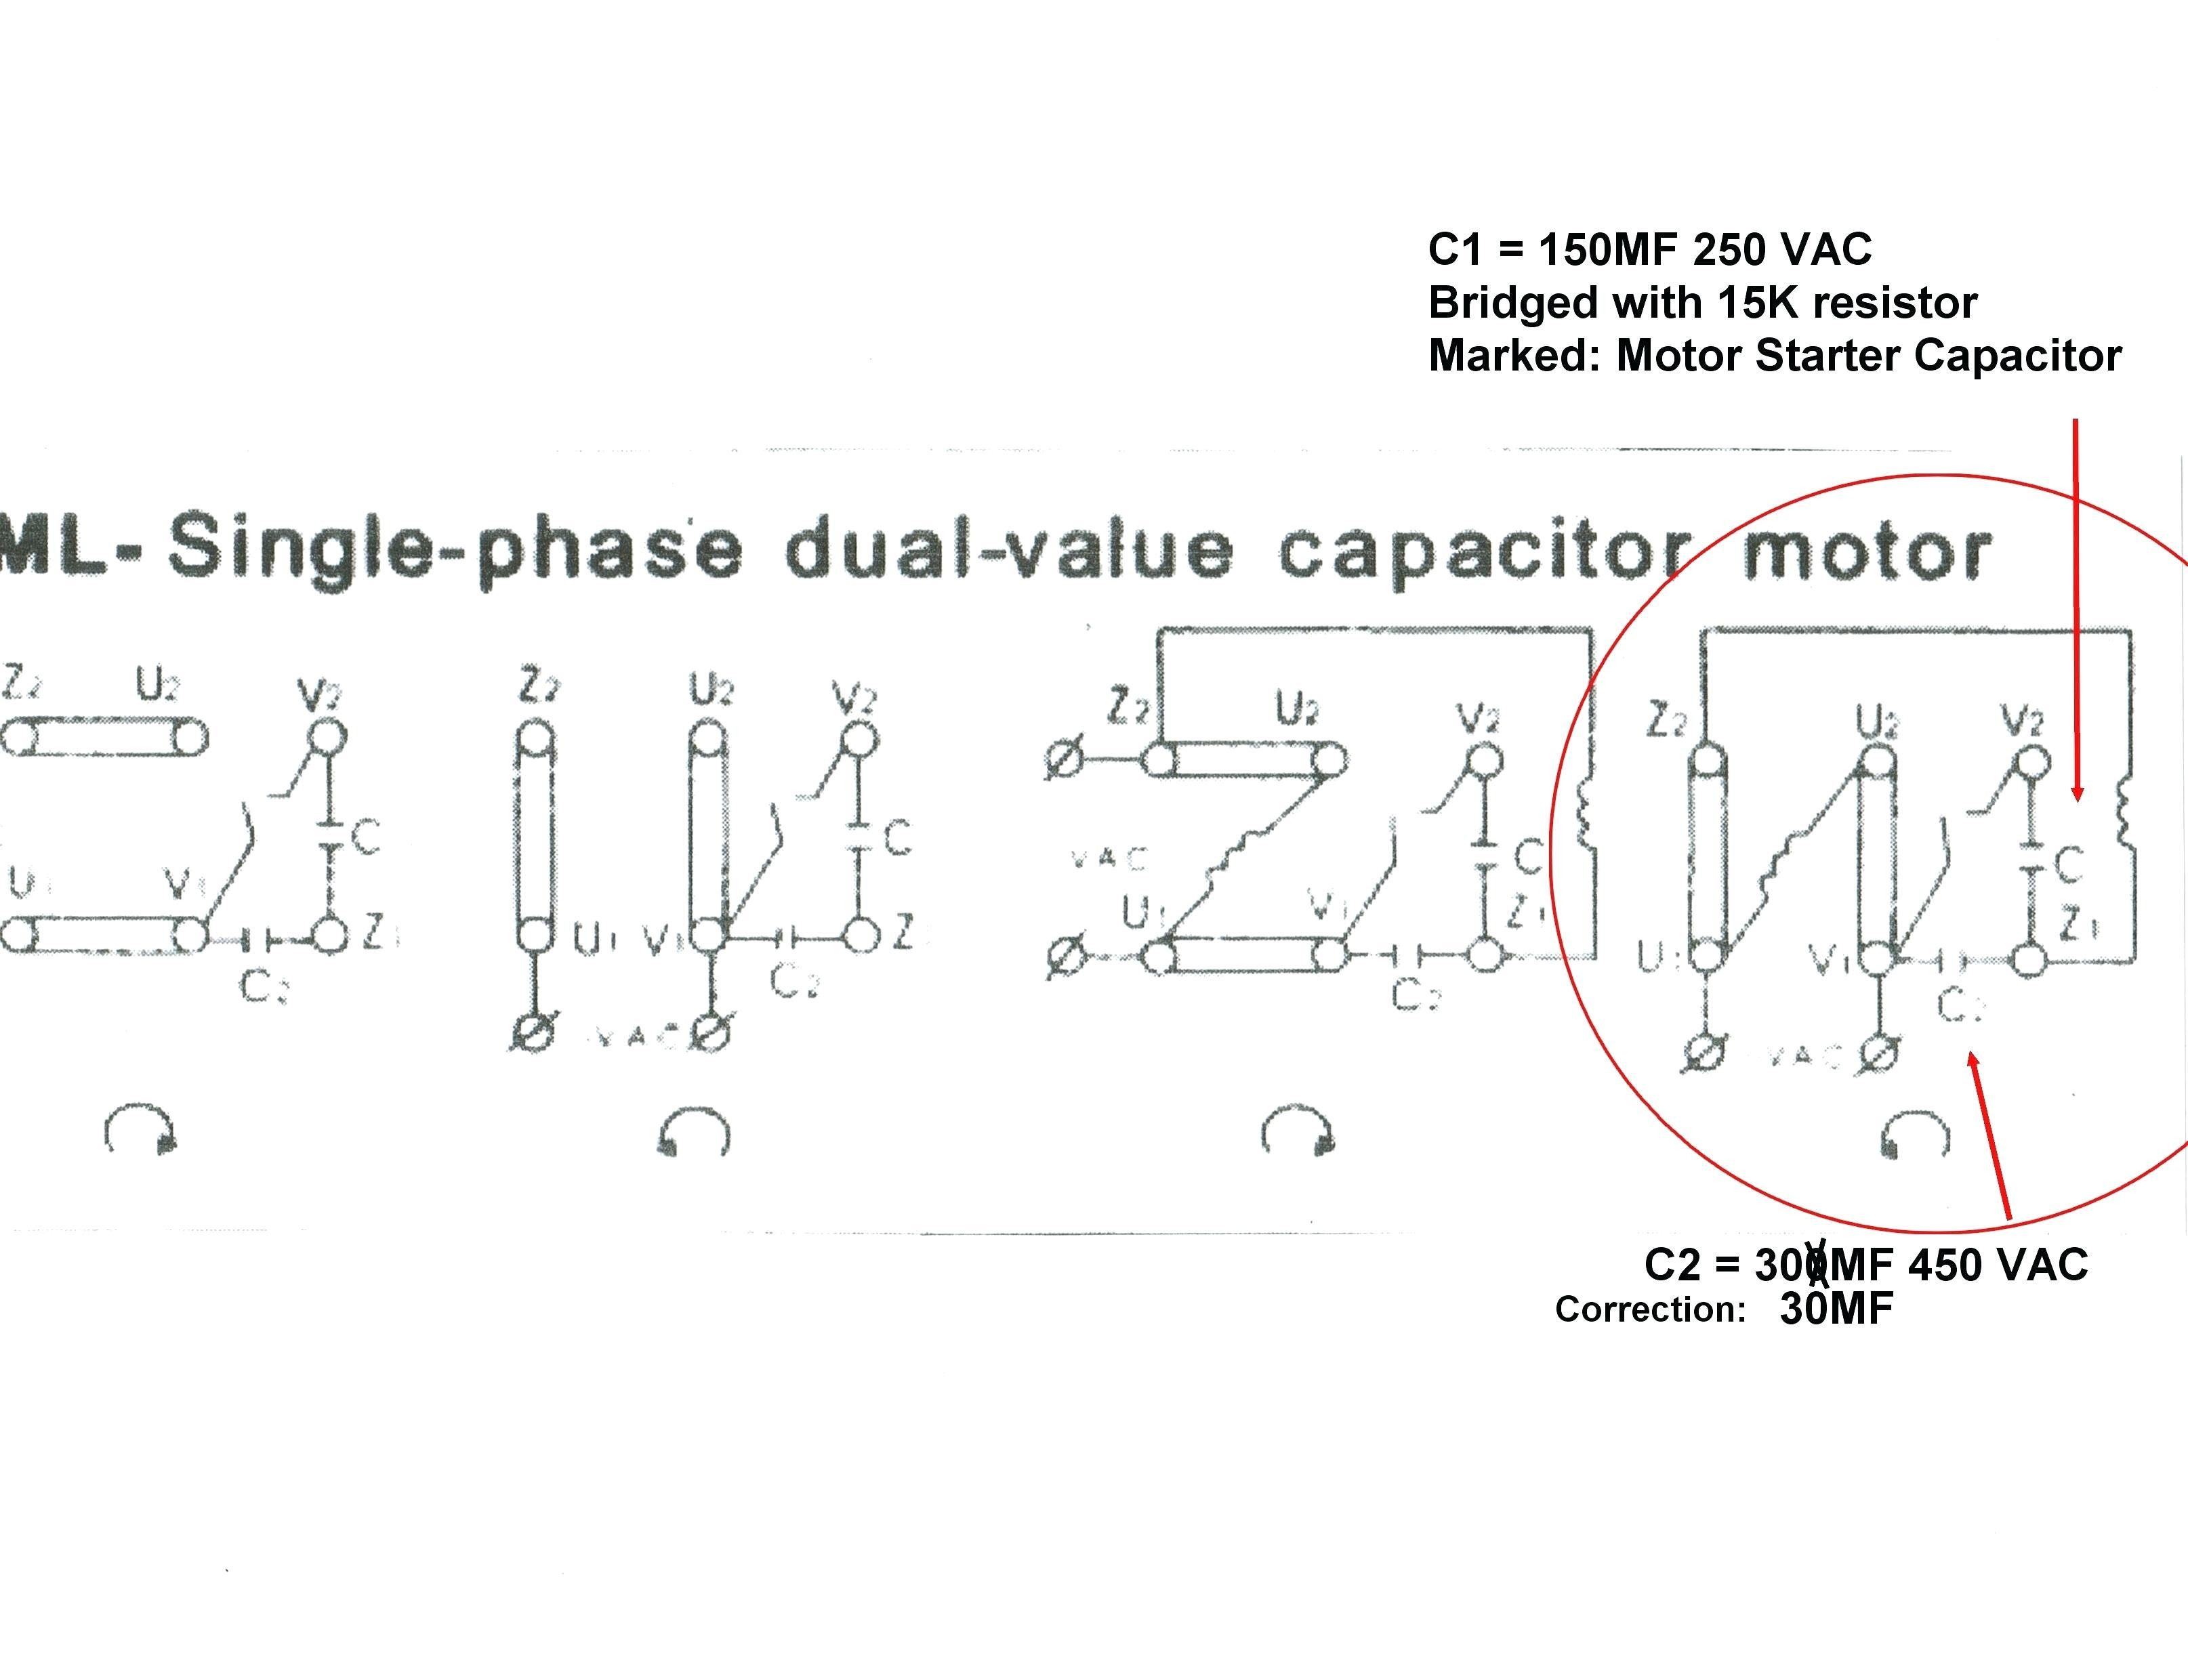 emerson 2hp electric motor wiring diagram wiring diagramwiring diagram  emerson electric motor spl 115 wiring diagramdoerr